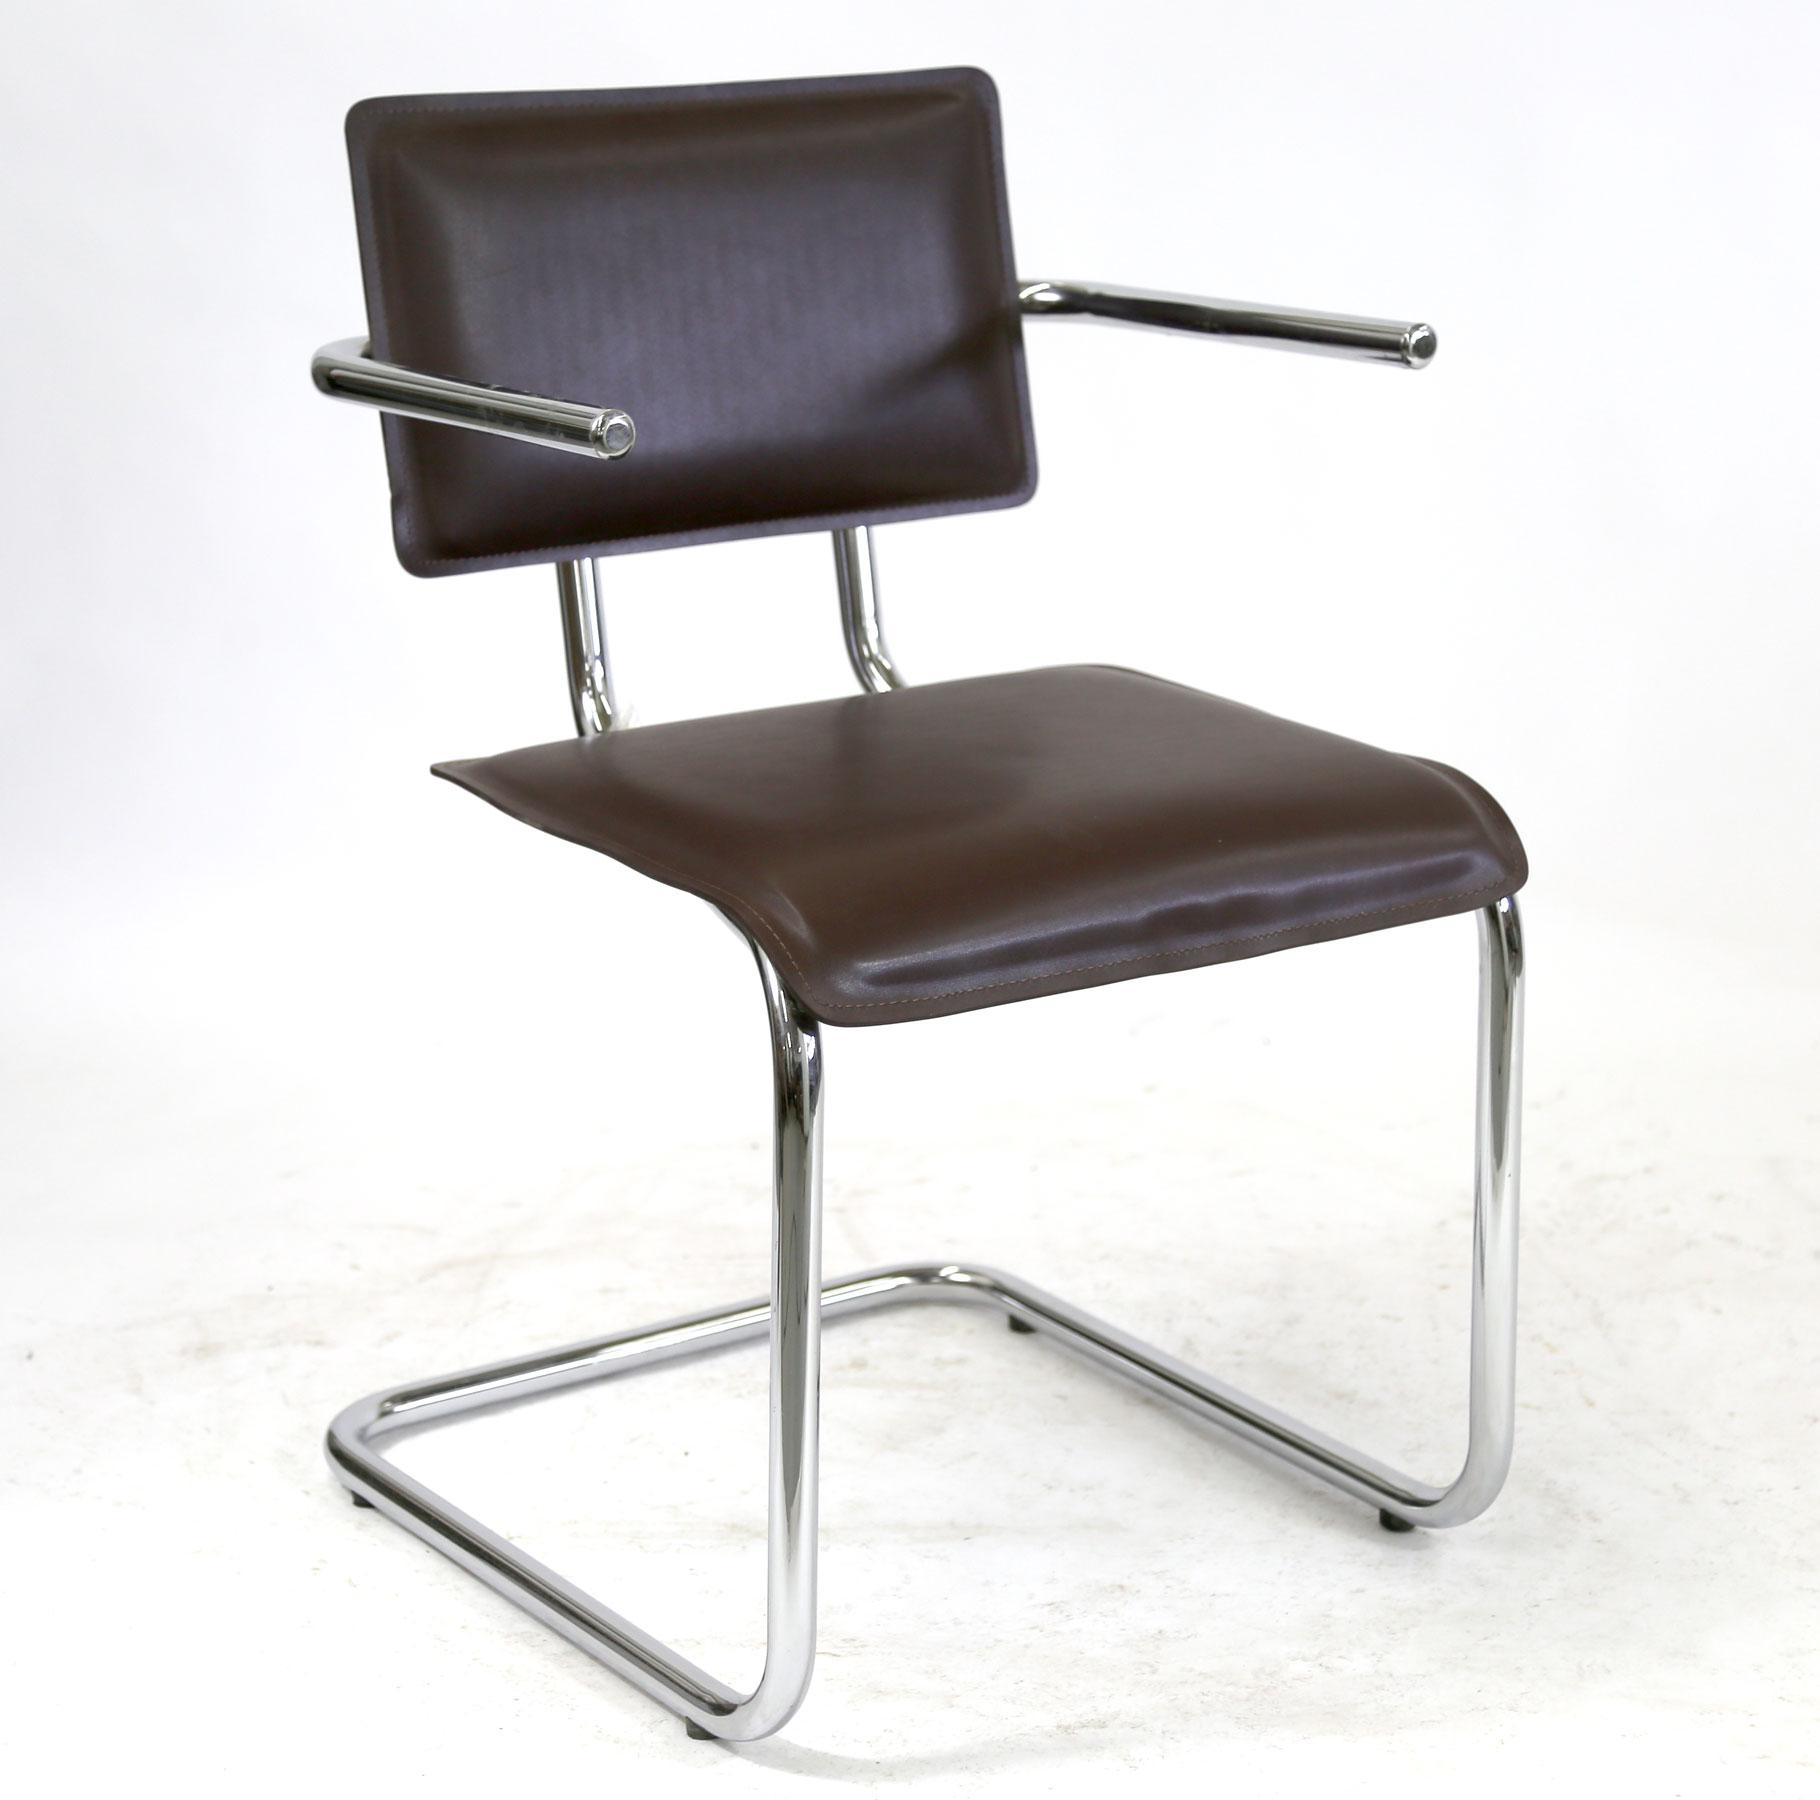 dark brown leather chair recliner slipcovers kehl brazilian modern chrome tube frame arm in beautiful bauhaus inspired with is a furniture design